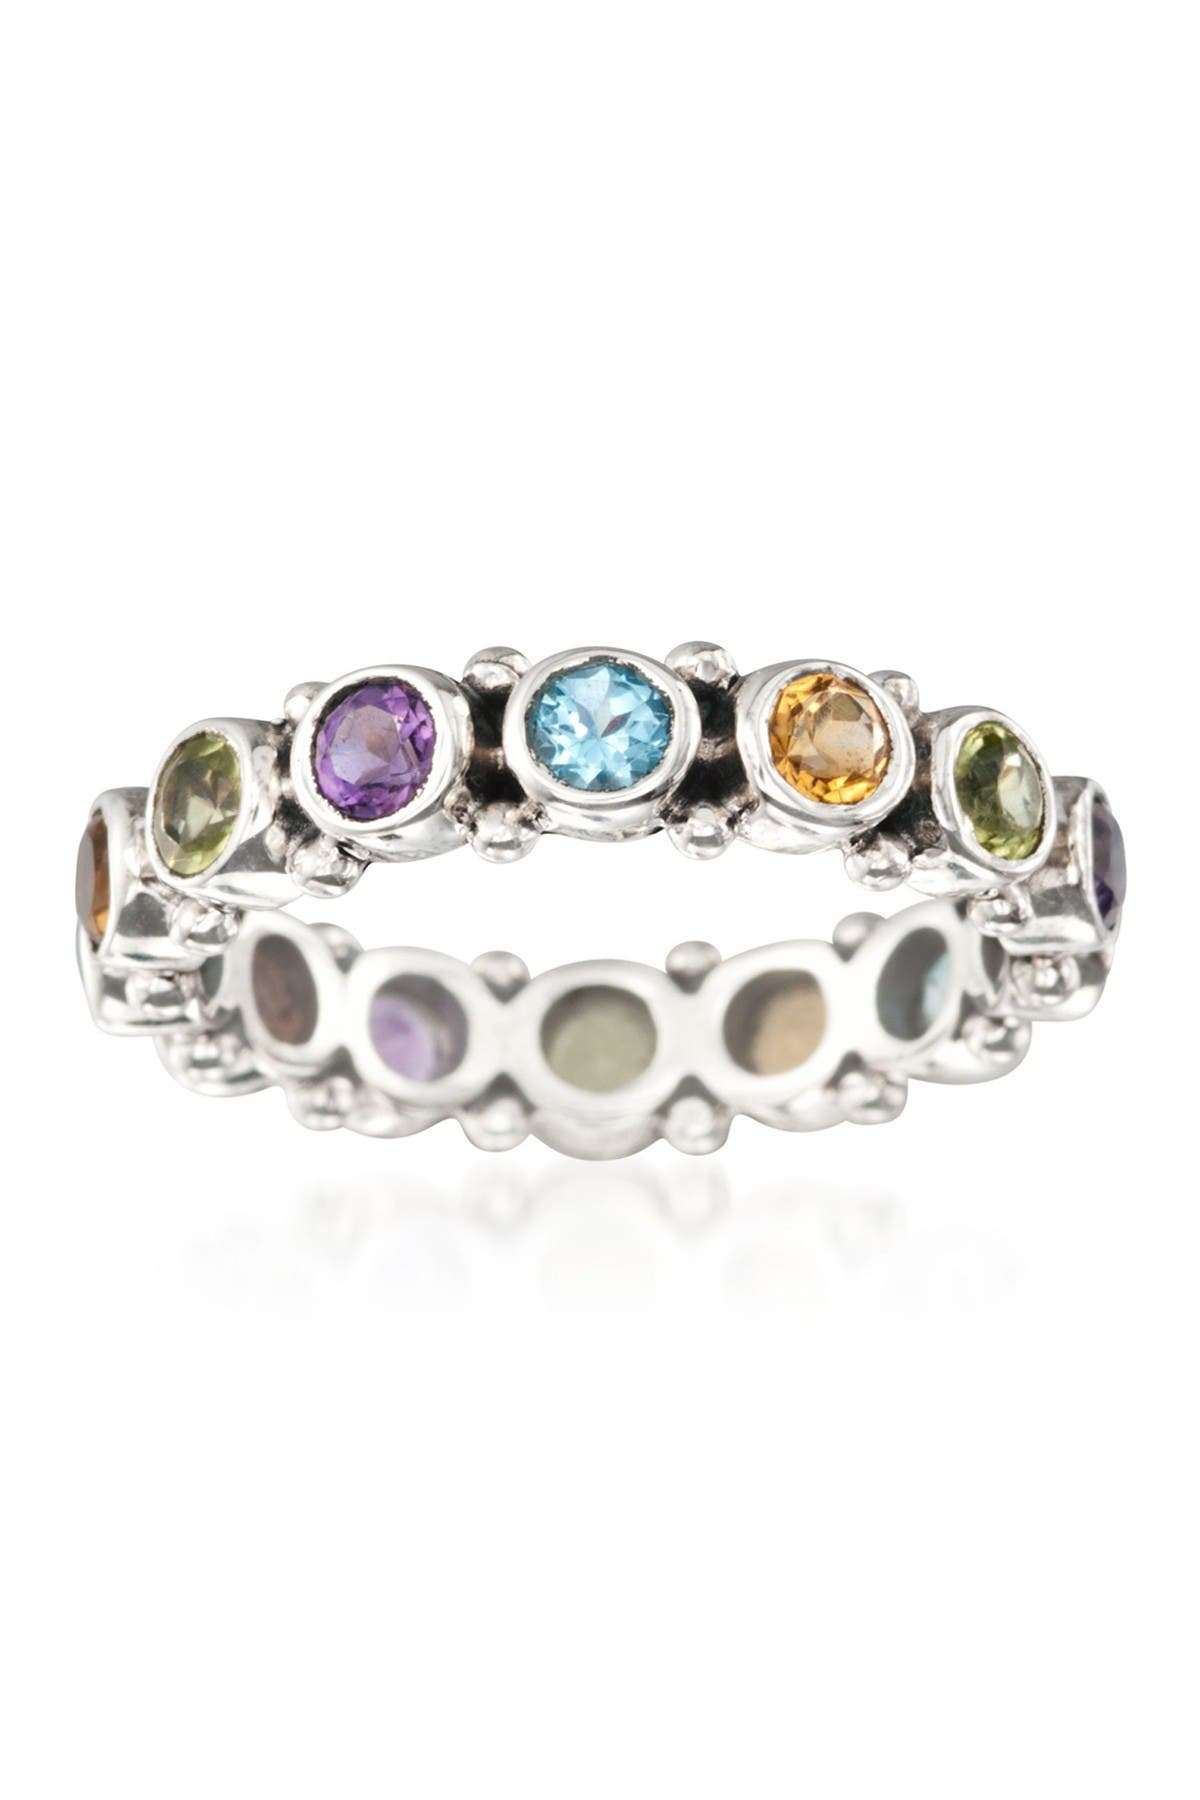 Image of Samuel B Jewelry Sterling Silver Multi Gemstone Eternity Band